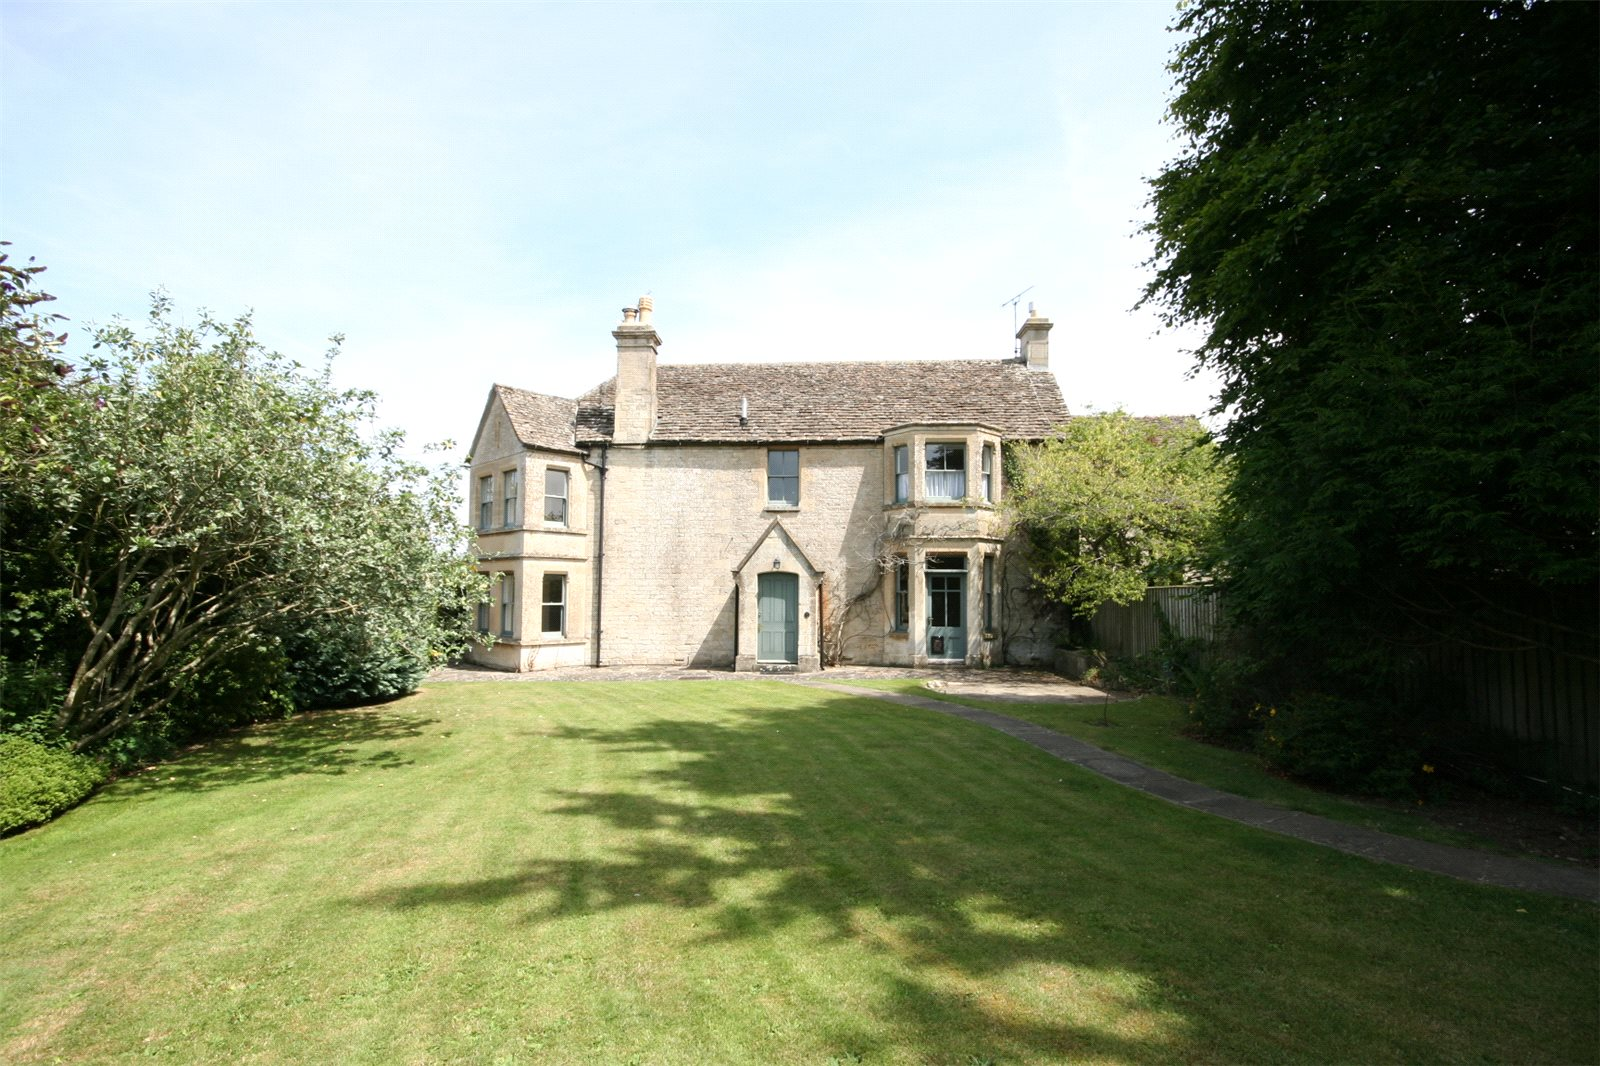 Additional photo for property listing at Kemble, Cirencester, Gloucestershire, GL7 Cirencester, England